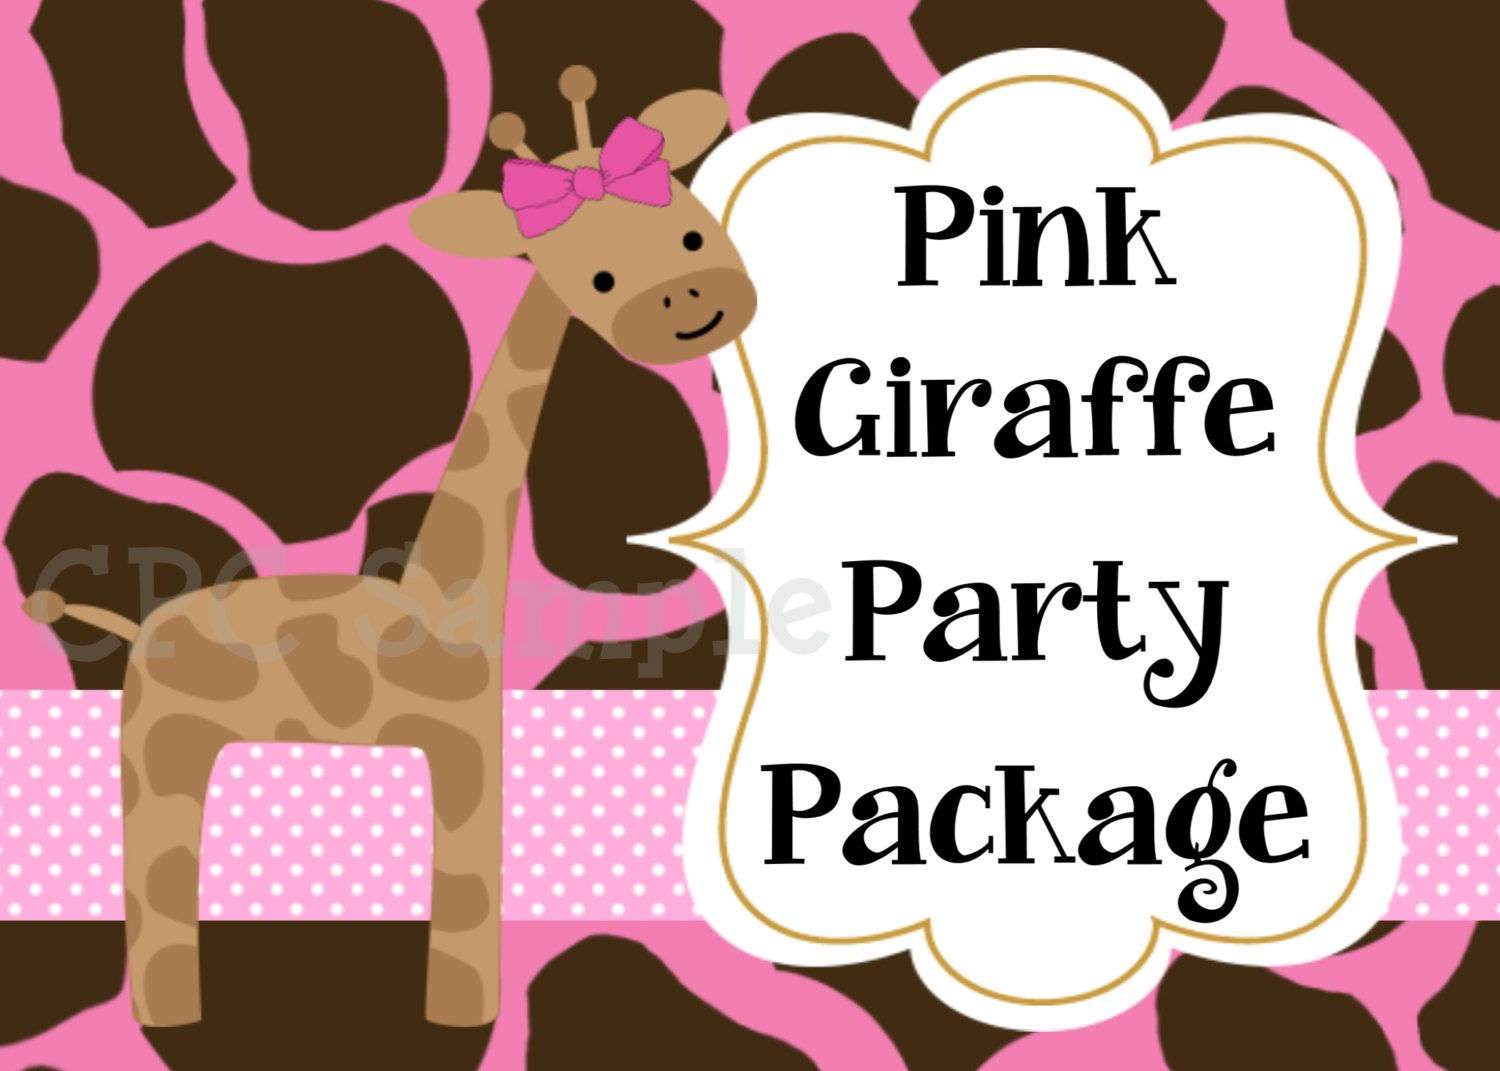 Pink Giraffe Invitation Birthday Party Package Includes ...